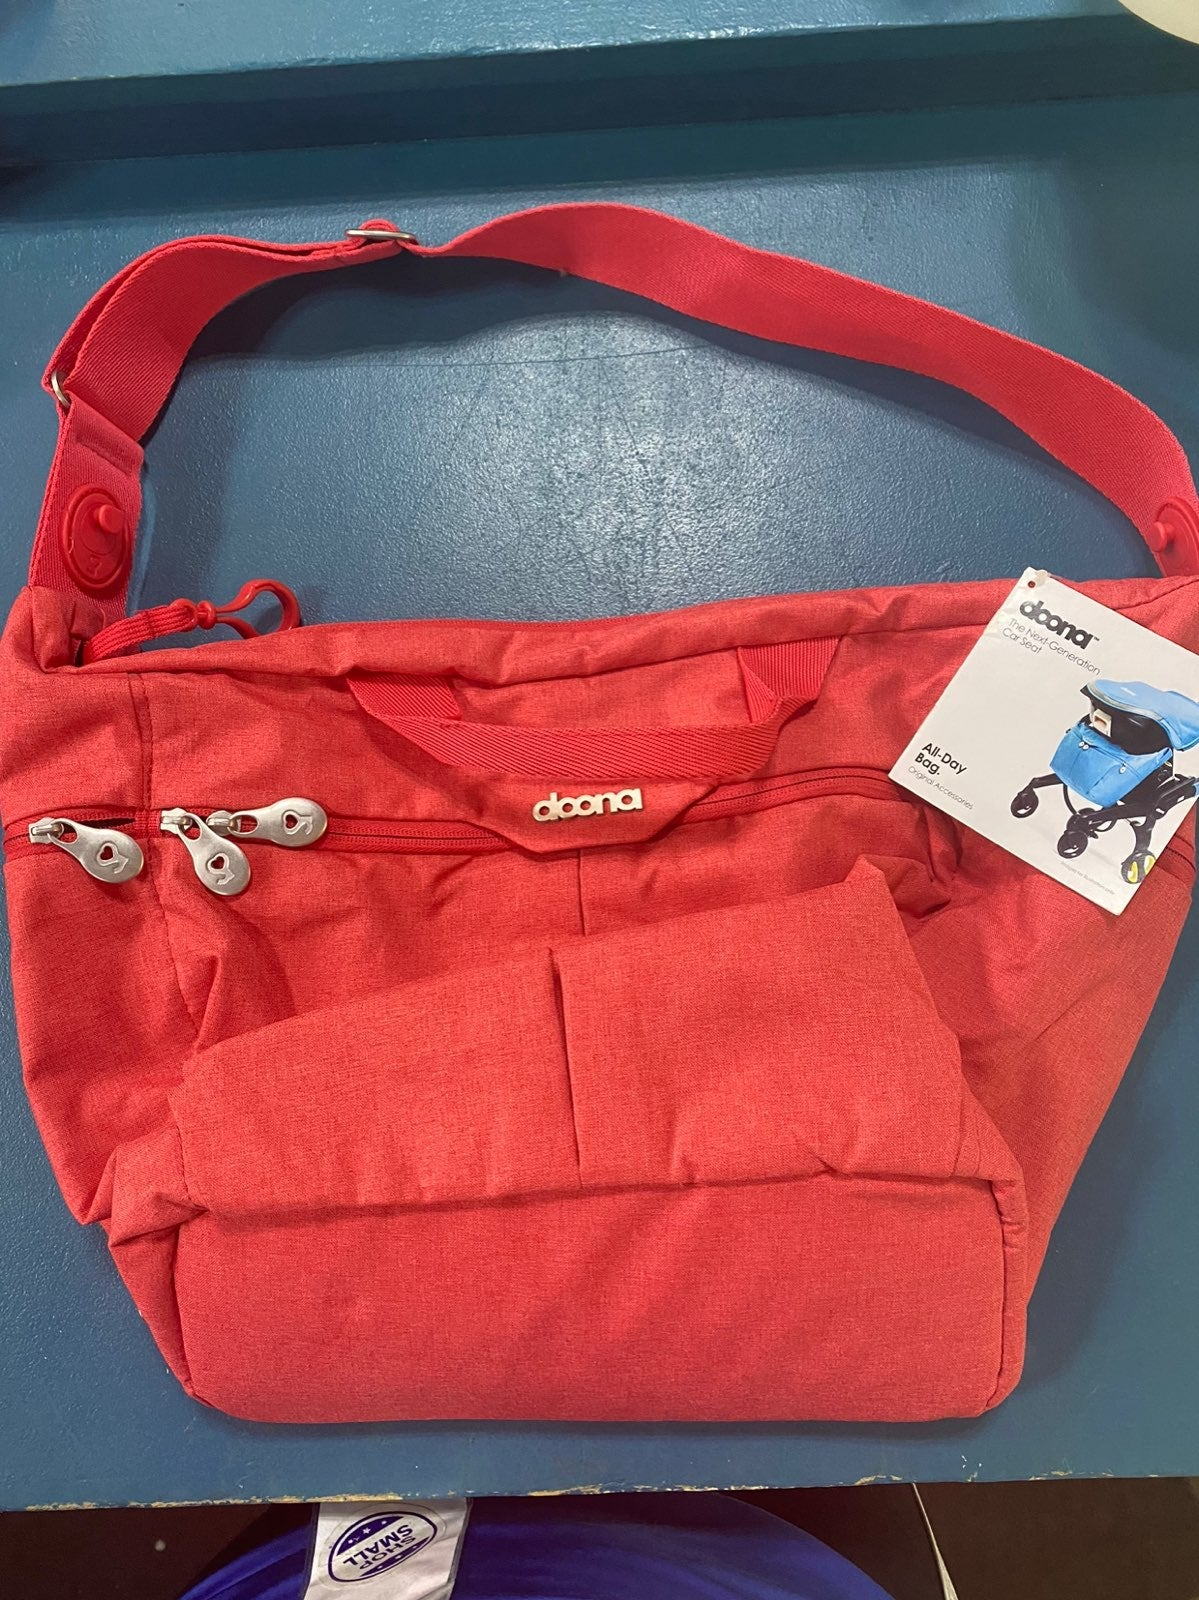 Love/Red Doona All Day Bag